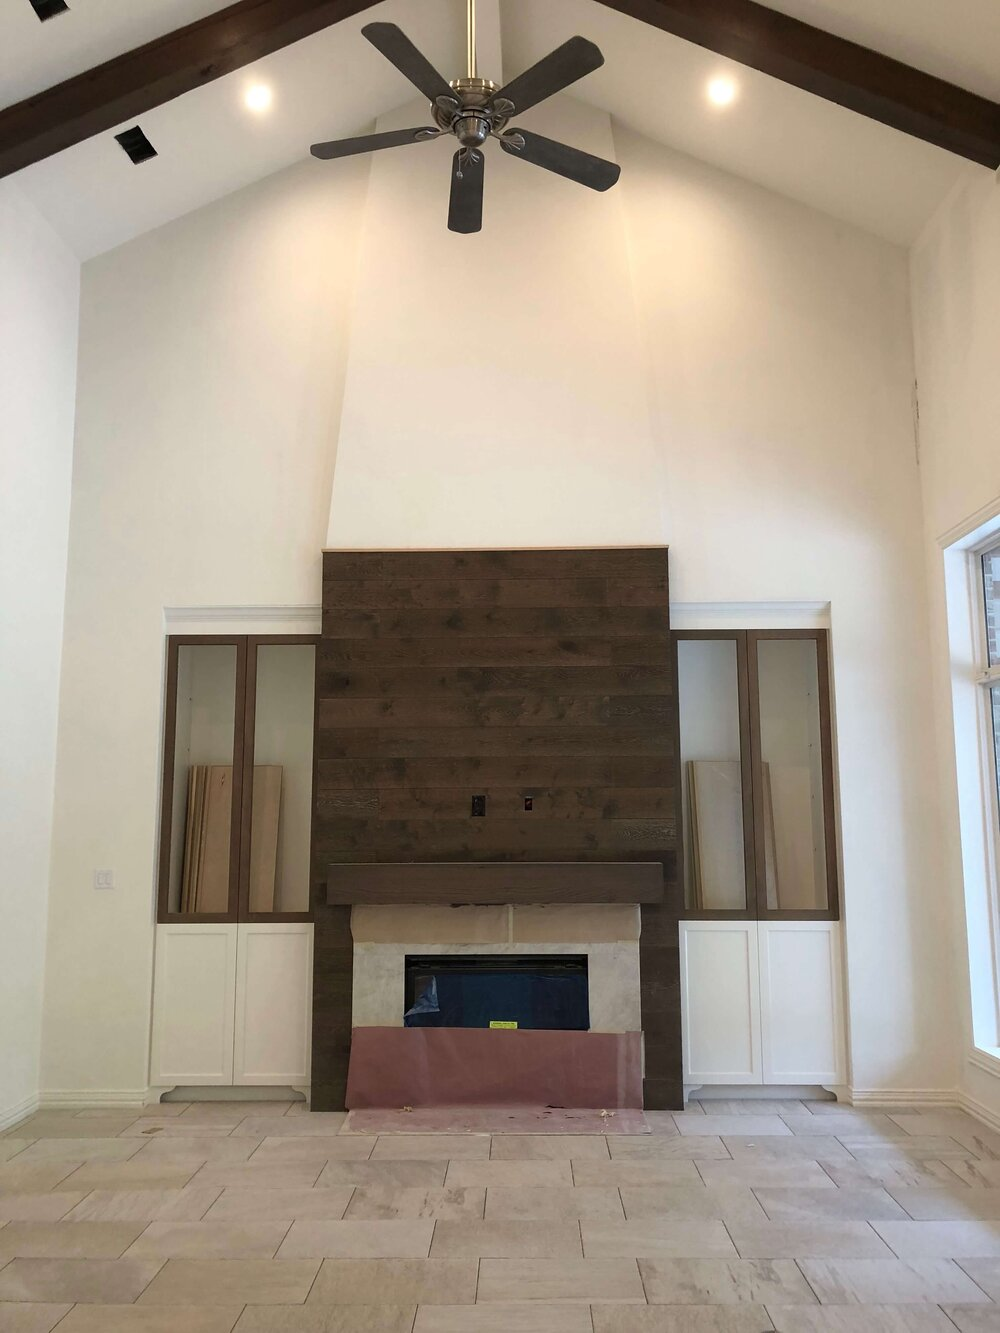 Construction pic - Wood flooring was used to clad this fireplace wall and provide a backdrop for the large tv. A quartzite slab surrounds the firebox. Designer: Carla Aston